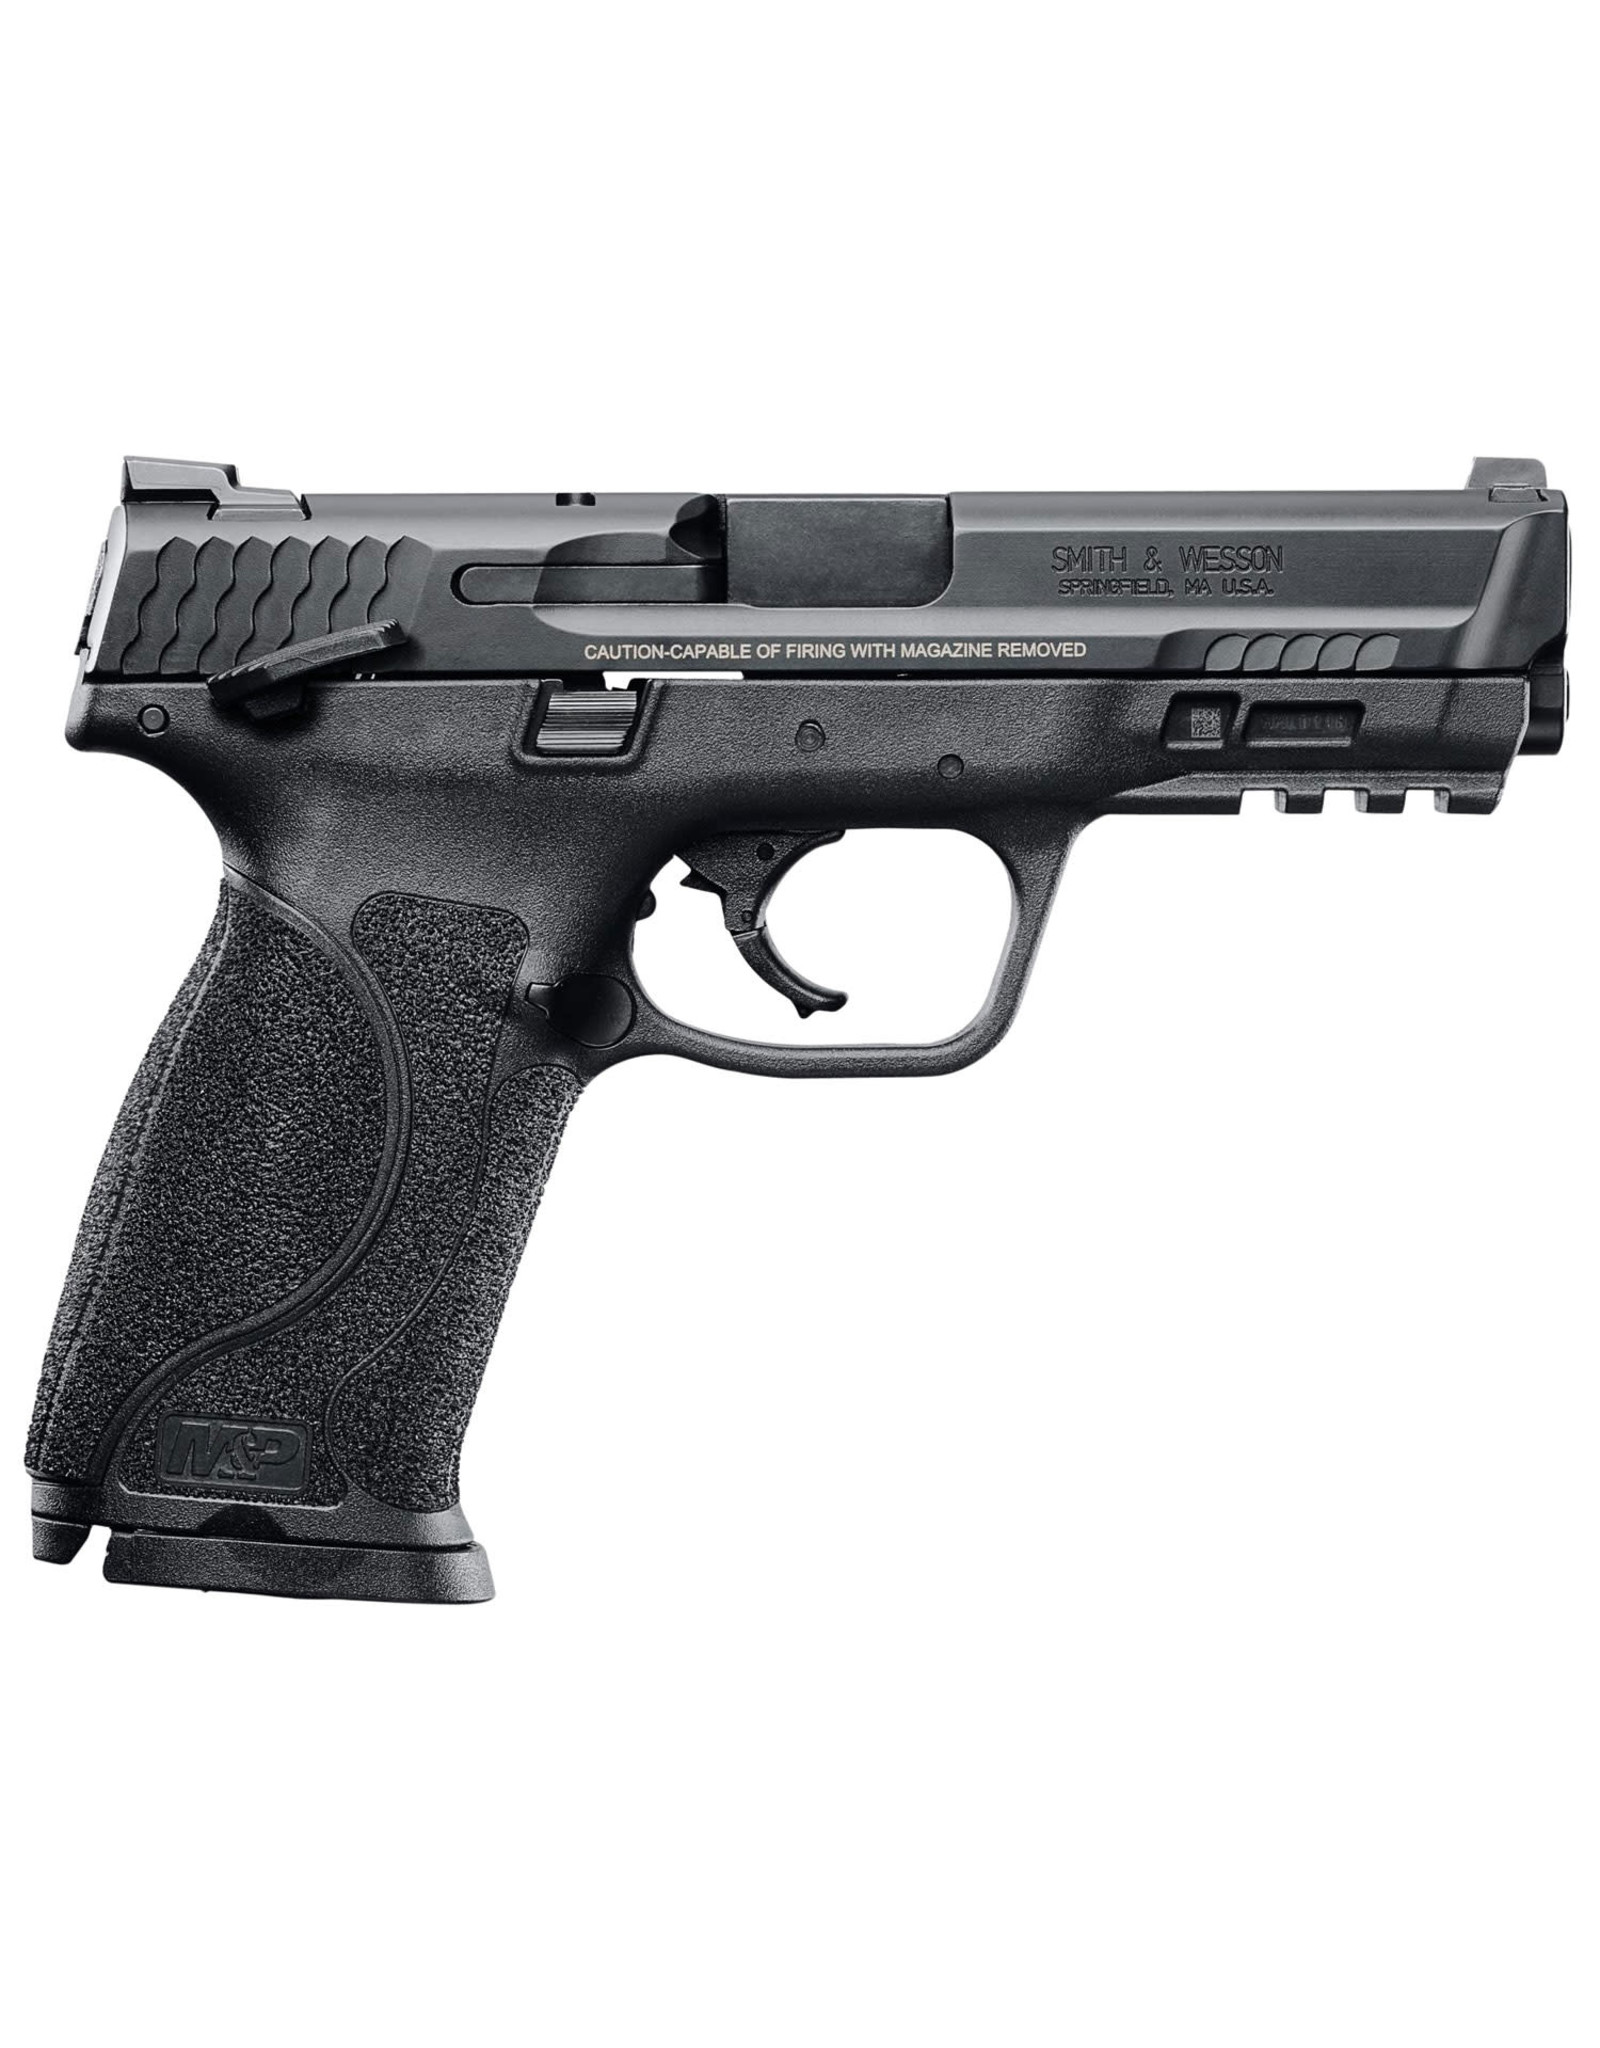 "SMITH & WESSON Smith & Wesson M&P 40S&W M2.0 4 1/4"" 15rd Ambi Safety"